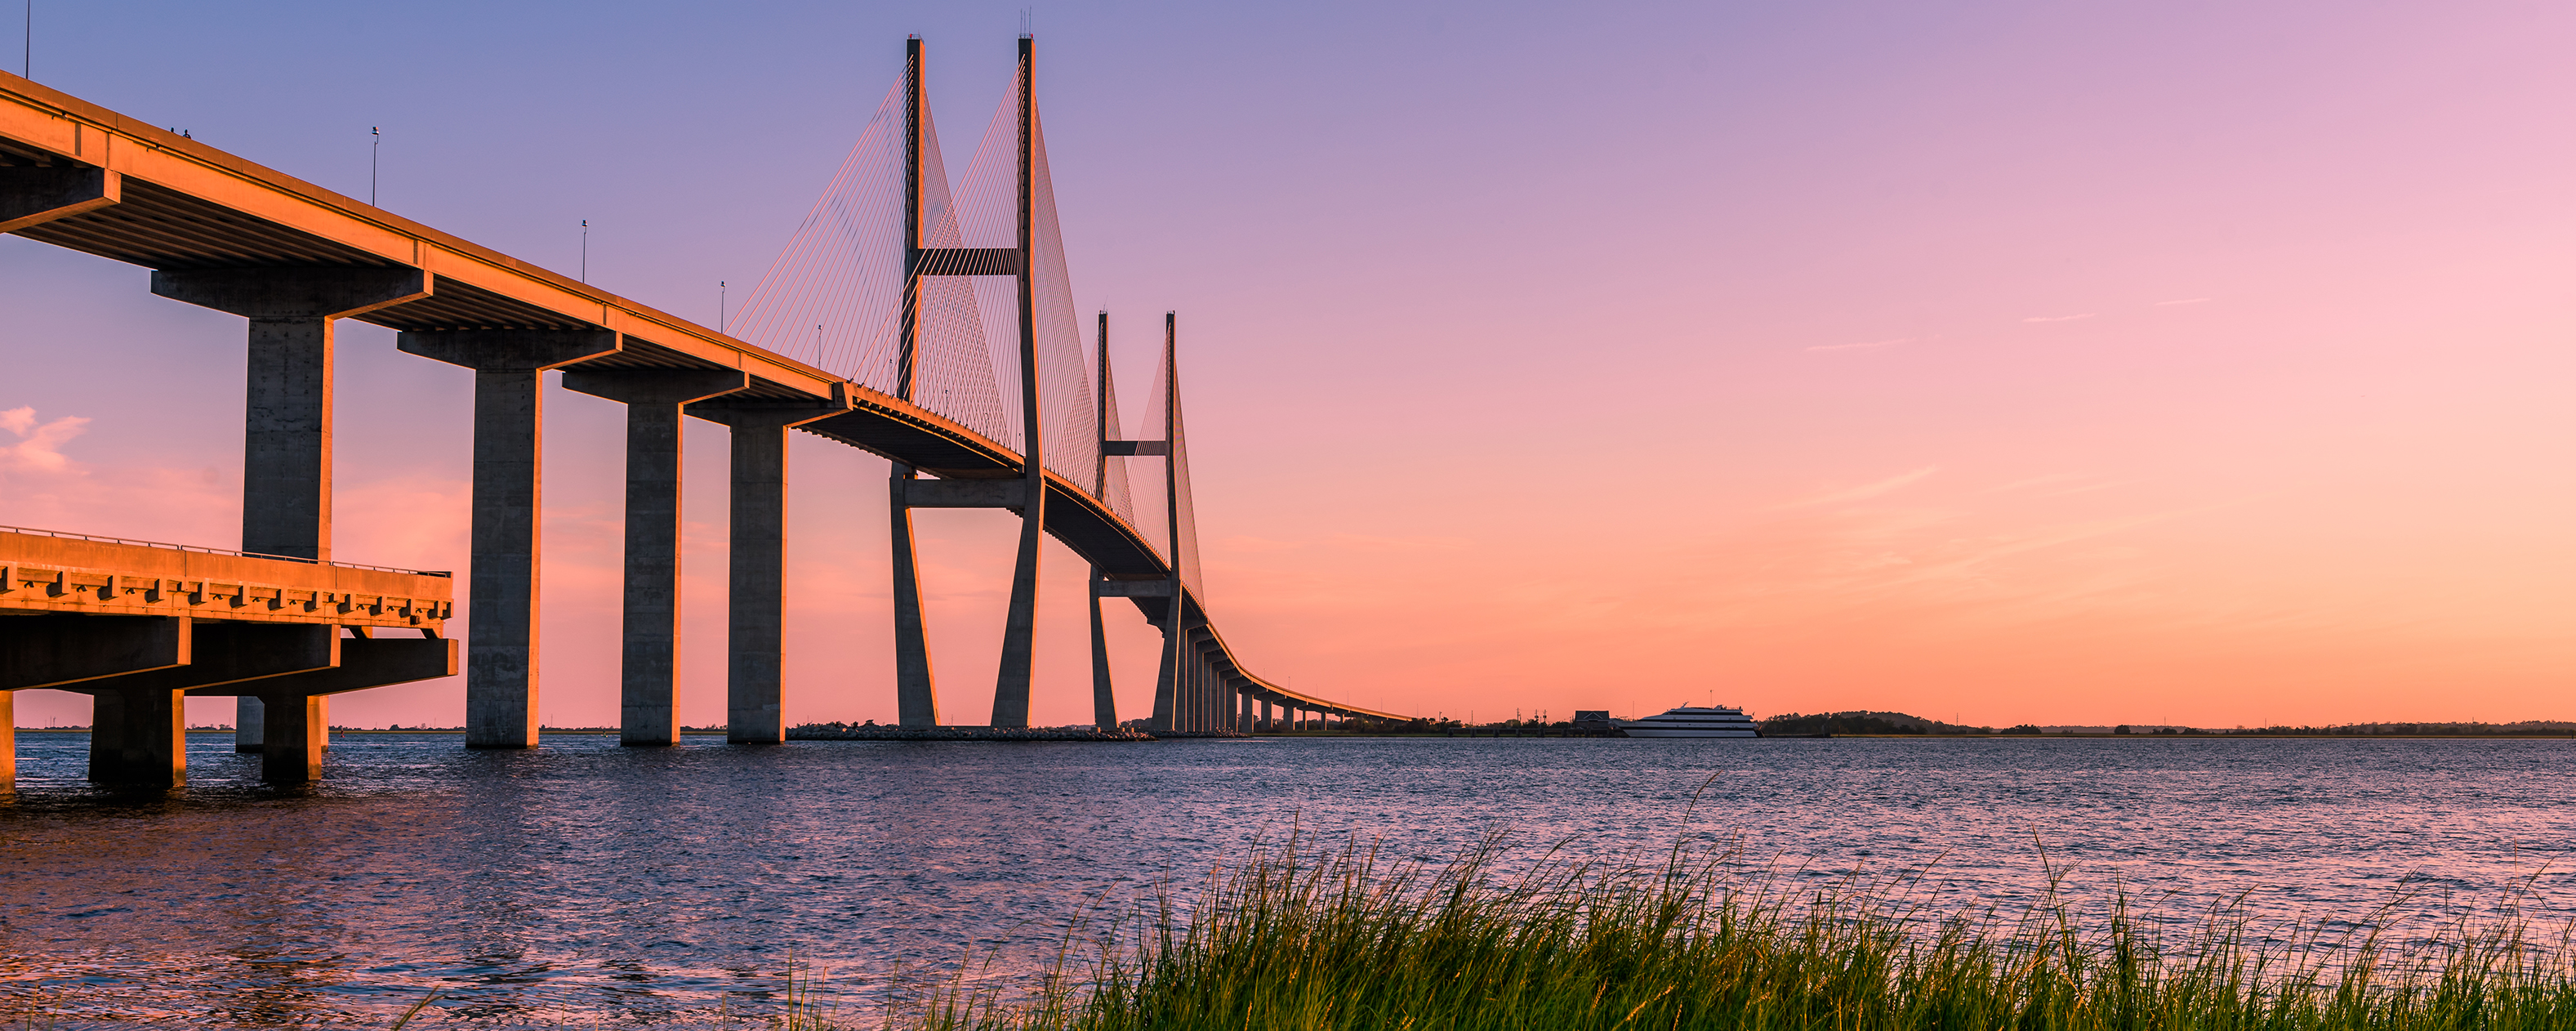 The Sidney Lanier Bridge at sunset